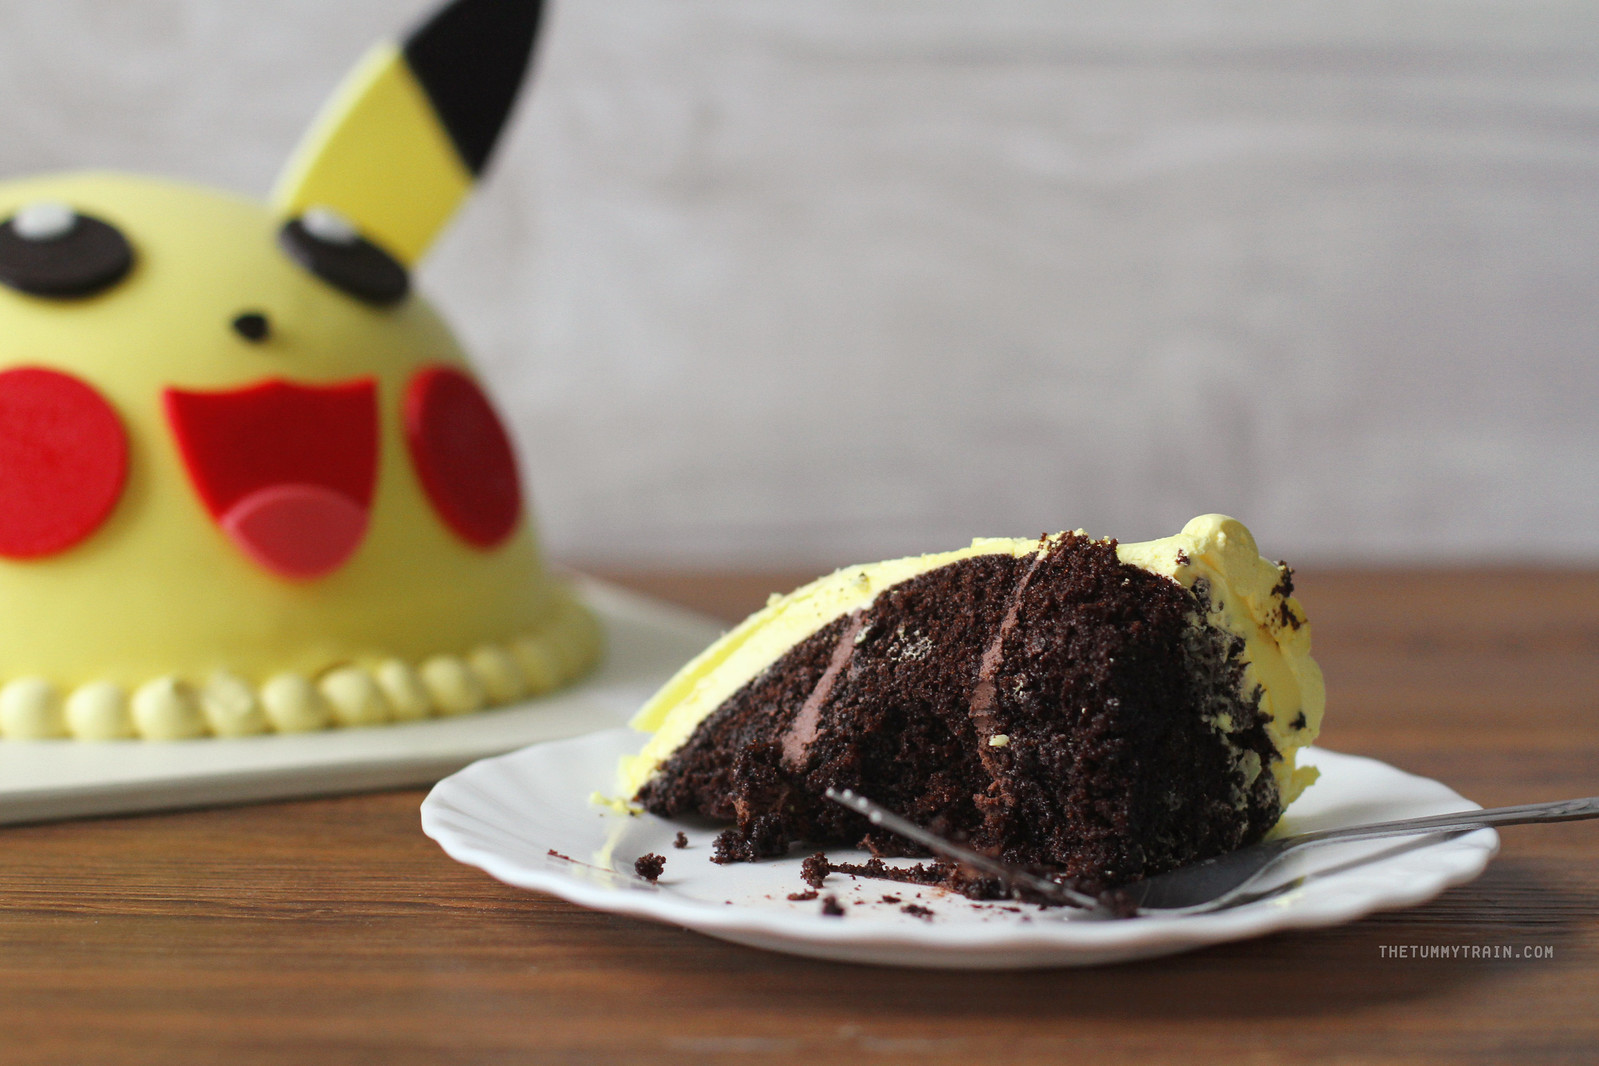 33264219746 840973ecd3 h - Fuel your Pokemon Go craze with Boulangerie22 Pokemon Cakes